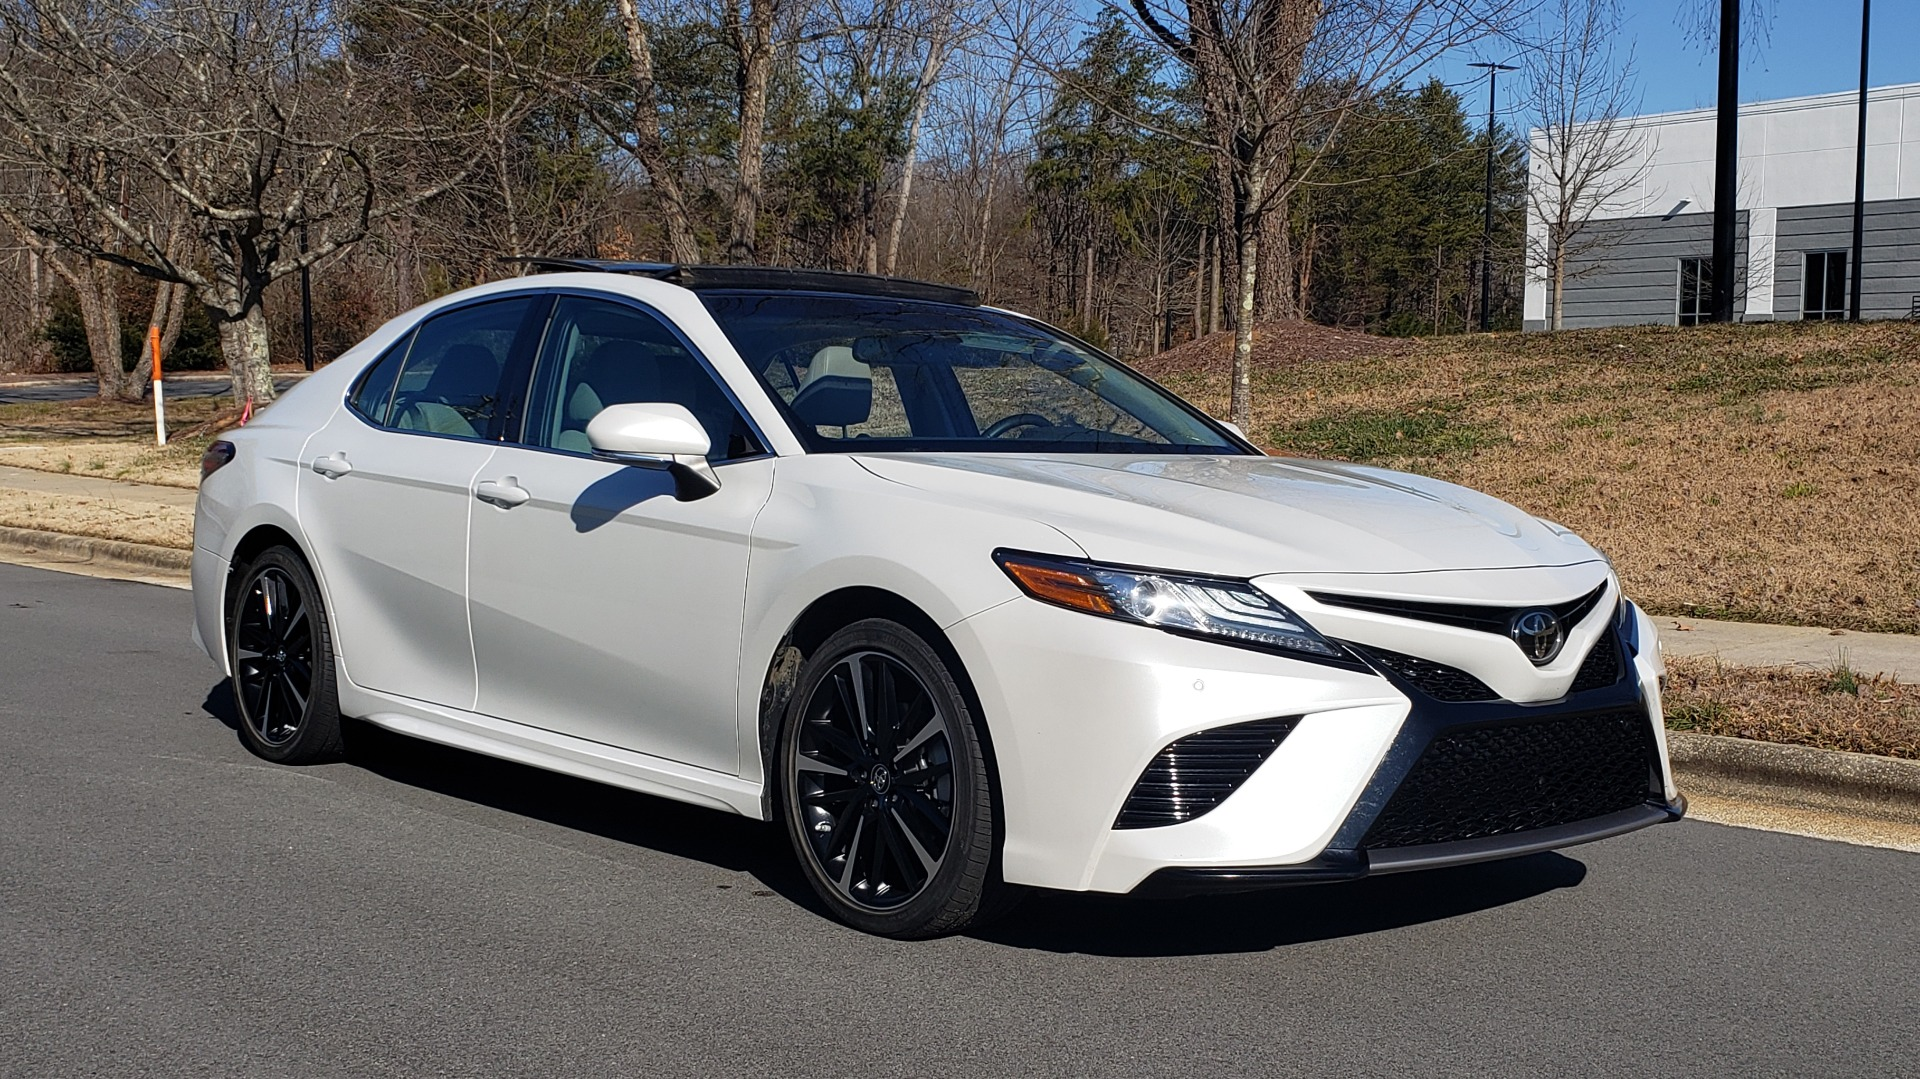 Used 2018 Toyota CAMRY XSE 2.5L SEDAN / 8-SPD AUTO / PANO-ROOF / 19IN WHEELS for sale $22,995 at Formula Imports in Charlotte NC 28227 5